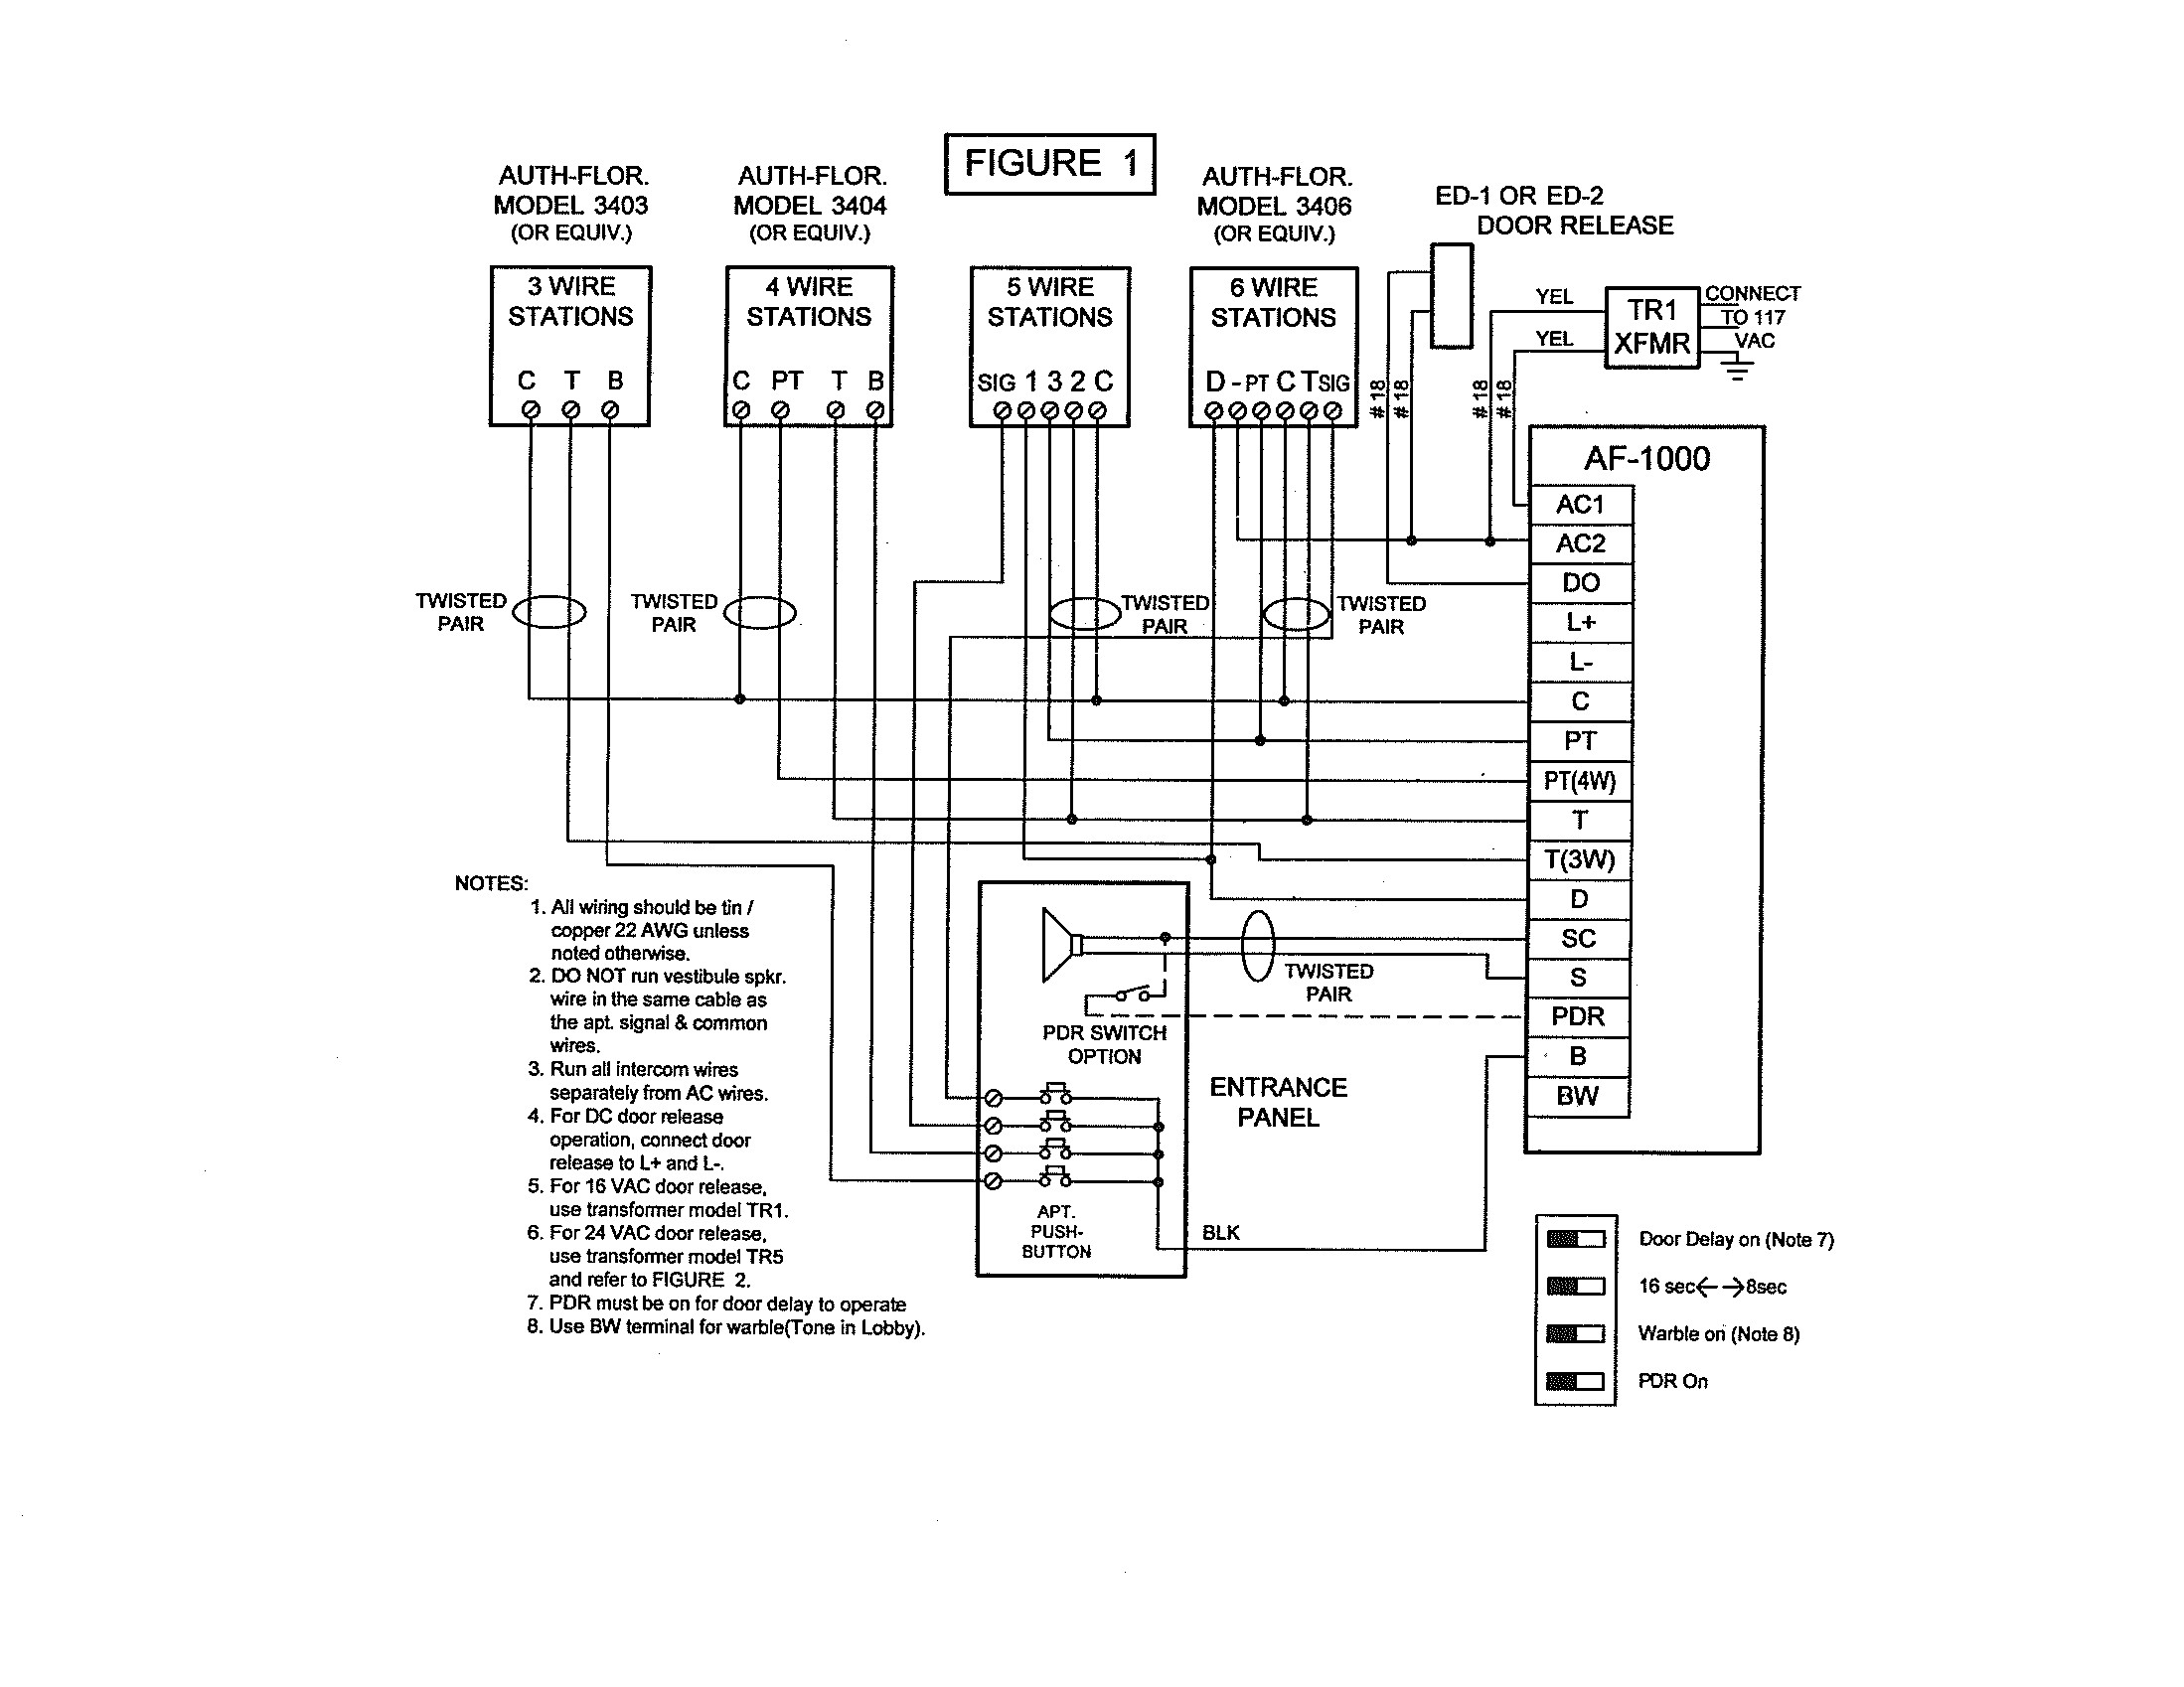 Tektone Emergency Pull Cord Wiring Diagram Manual Of Images Gallery Pacific Electronics Af3600 Af 3600 Transfer Relay Unit Rh Leedan Com